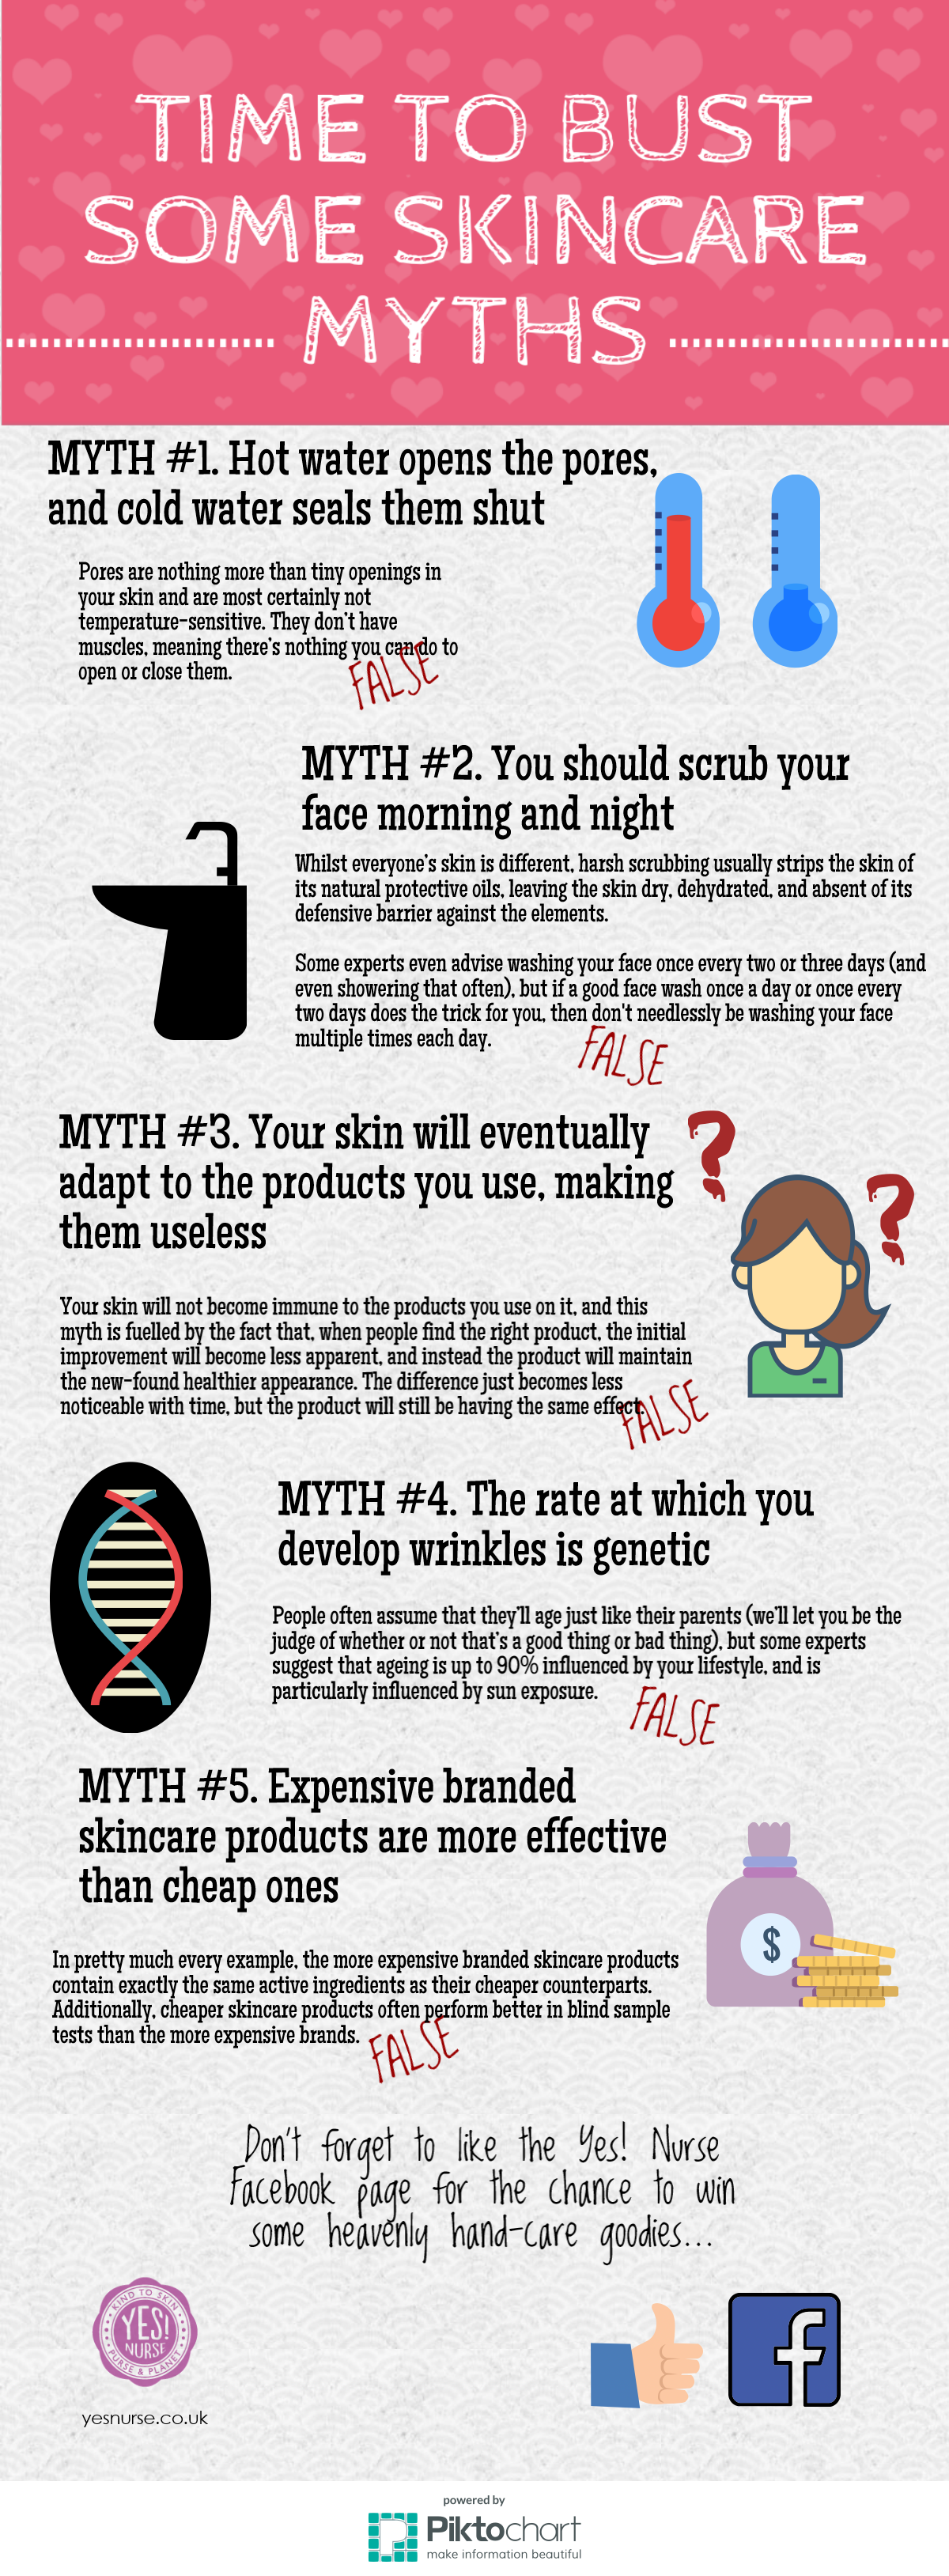 skin myths infographic